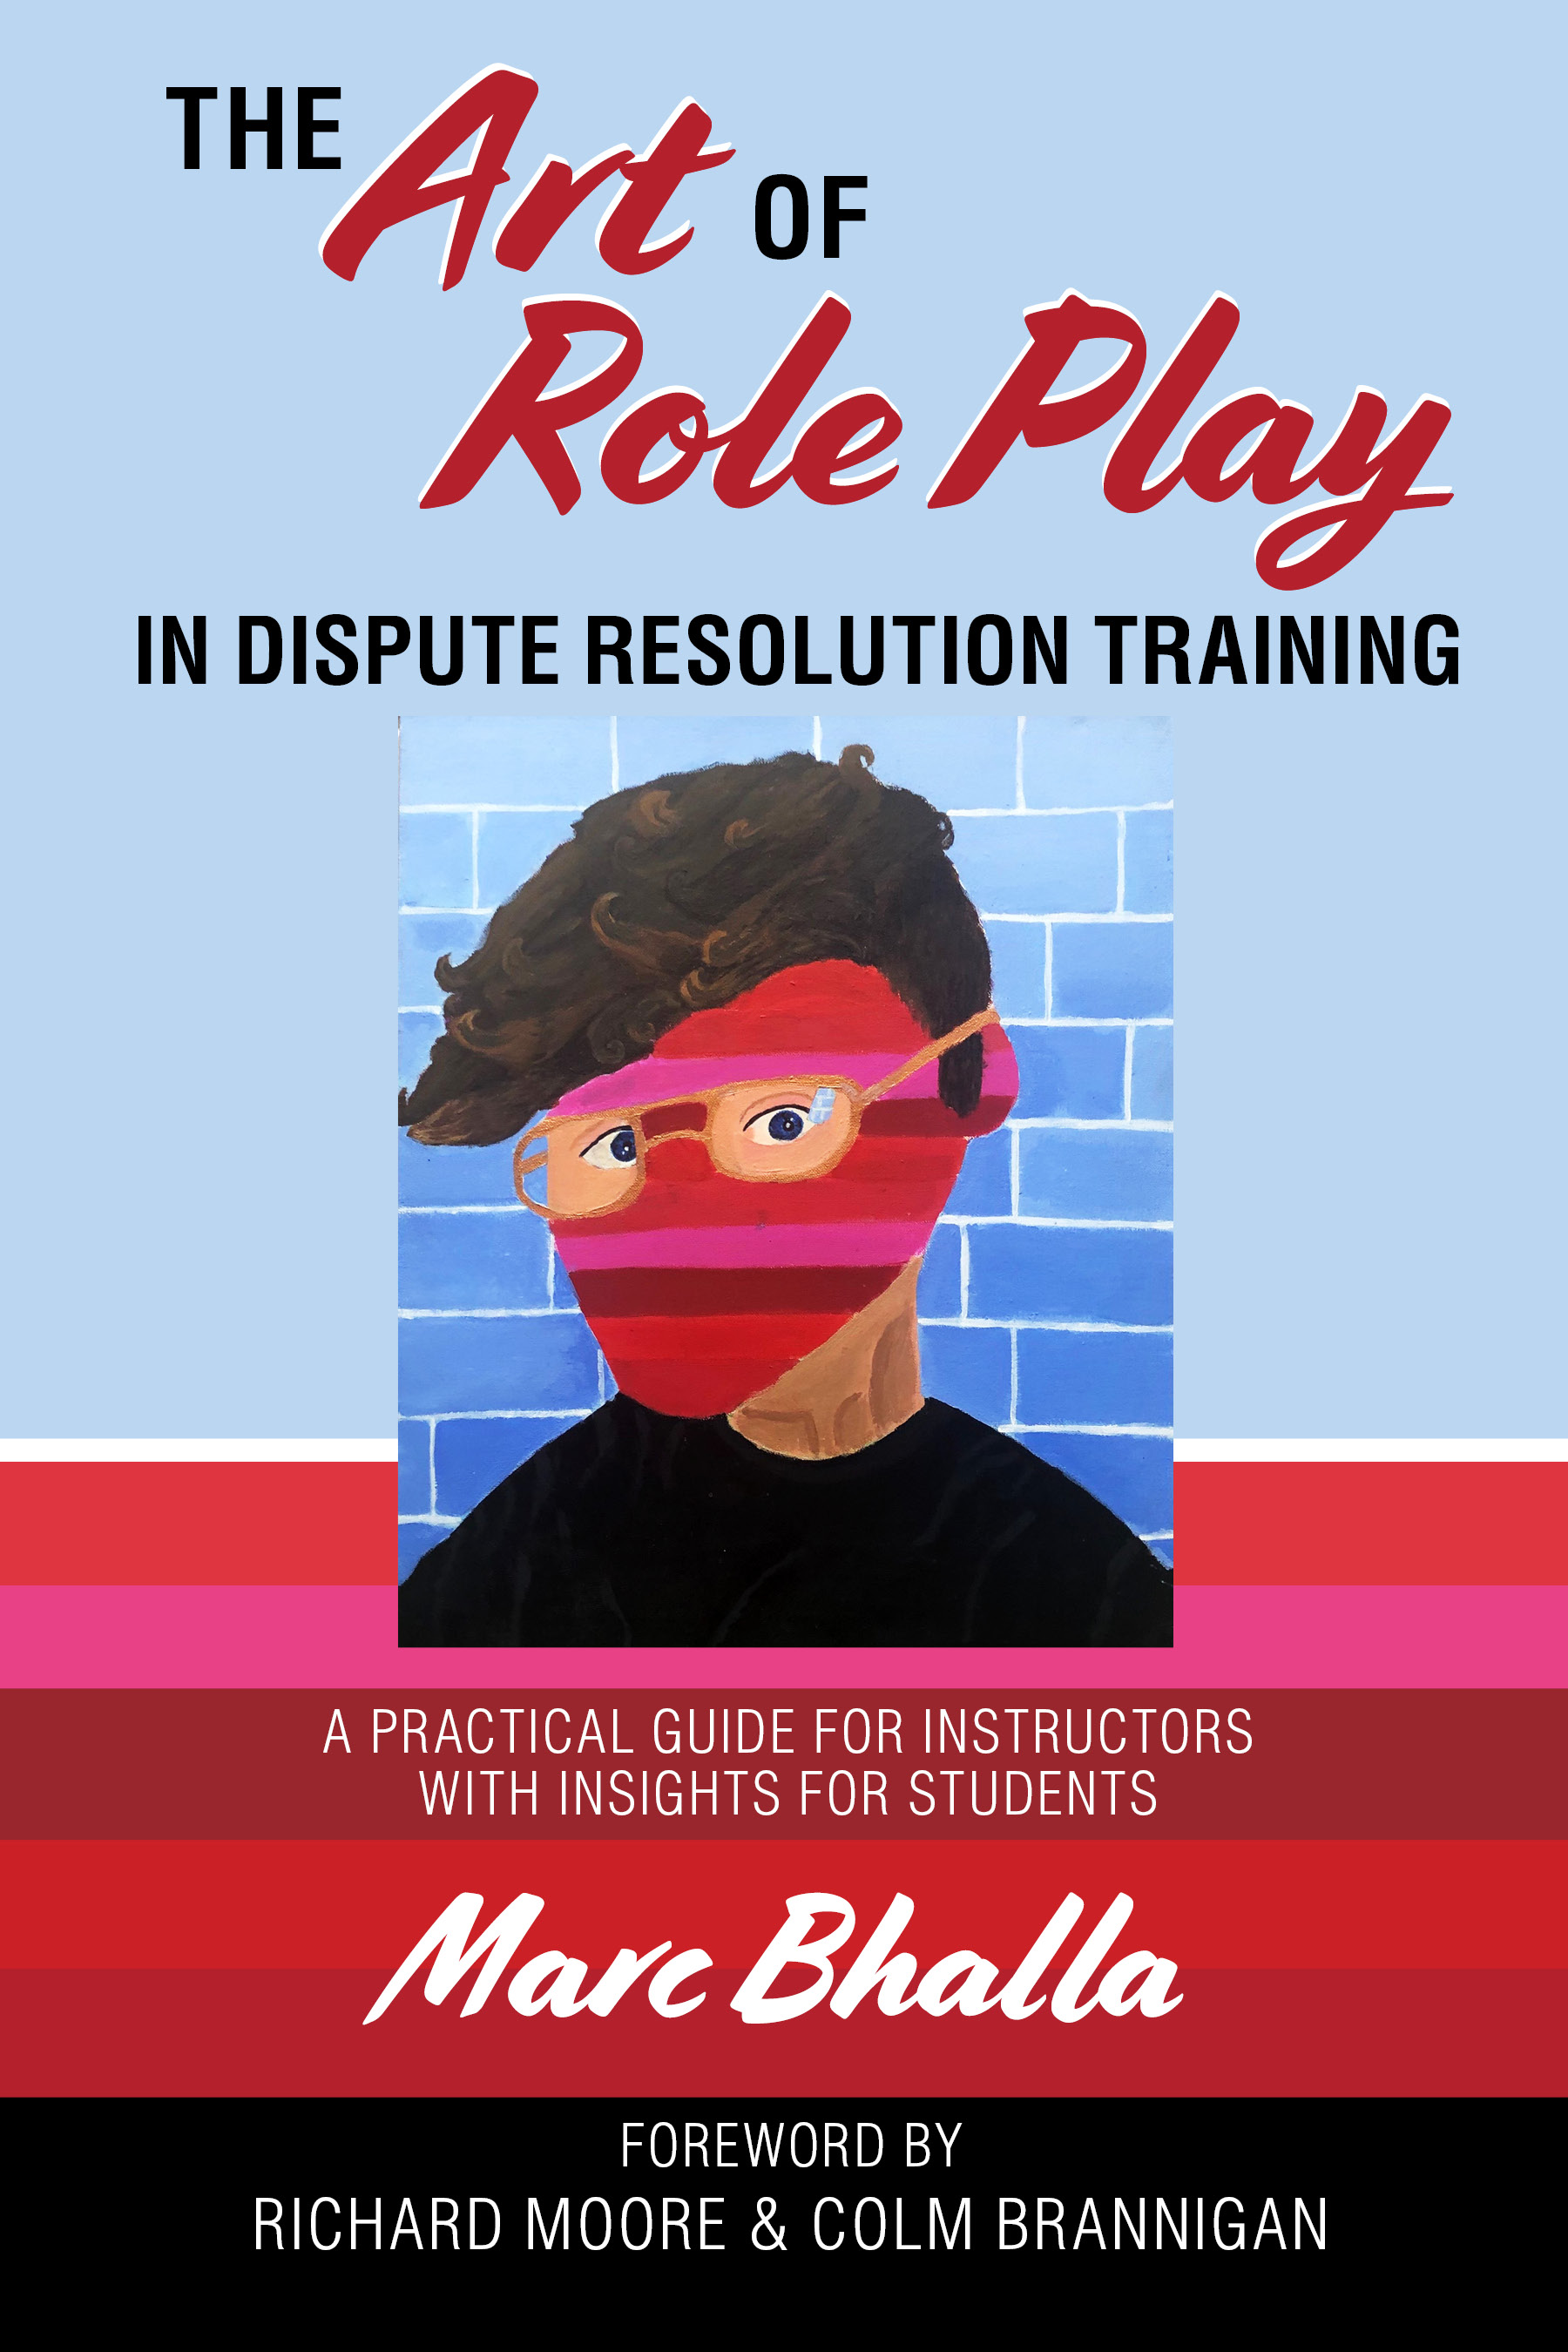 The Art of Role Play in Dispute Resolution Training